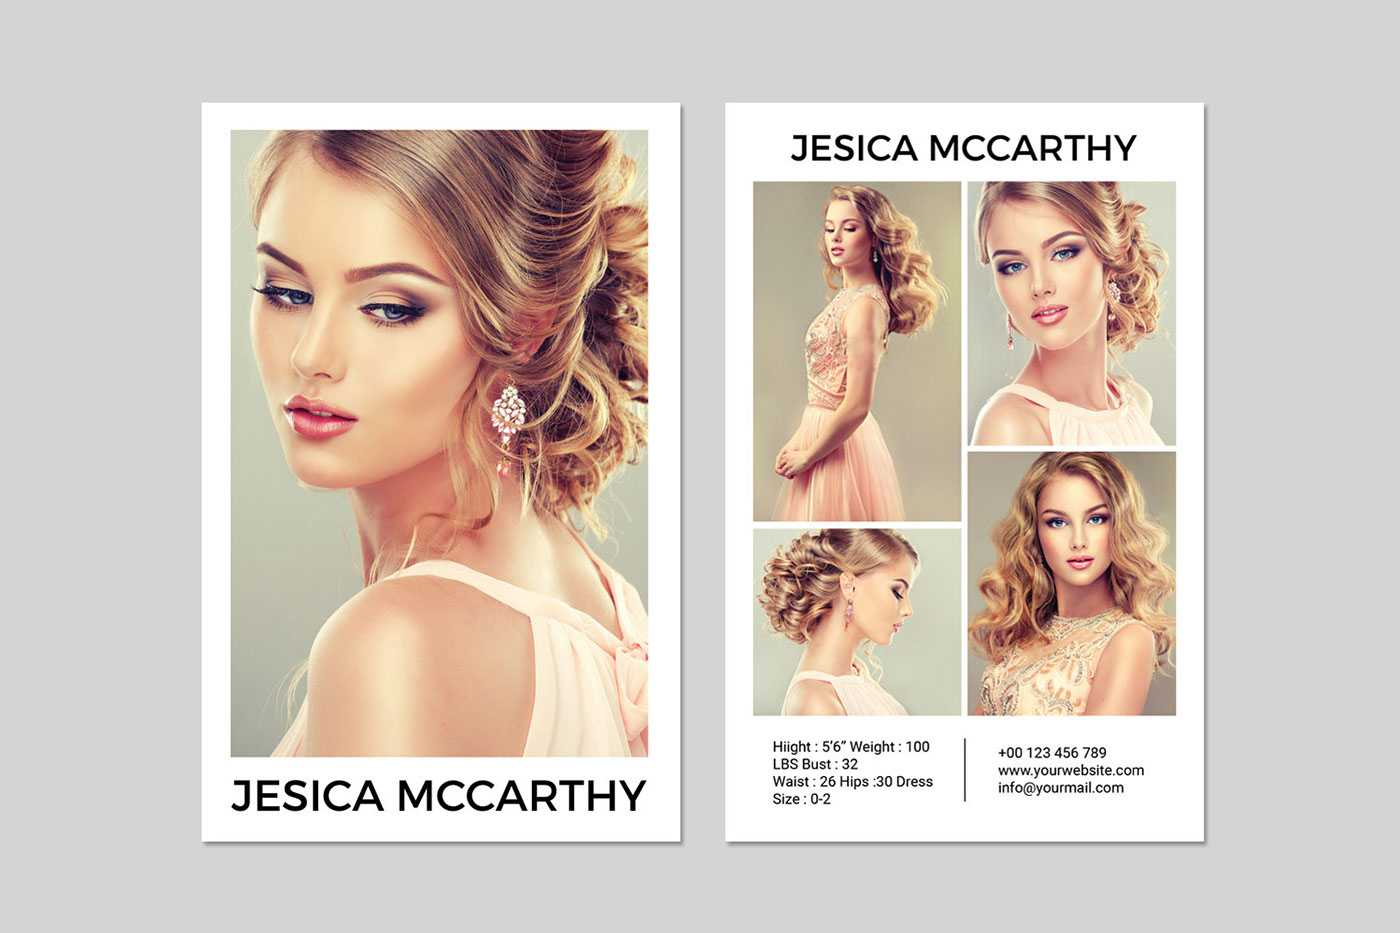 031 Model Comp Card Template Outstanding Ideas Psd Free Throughout Download Comp Card Template